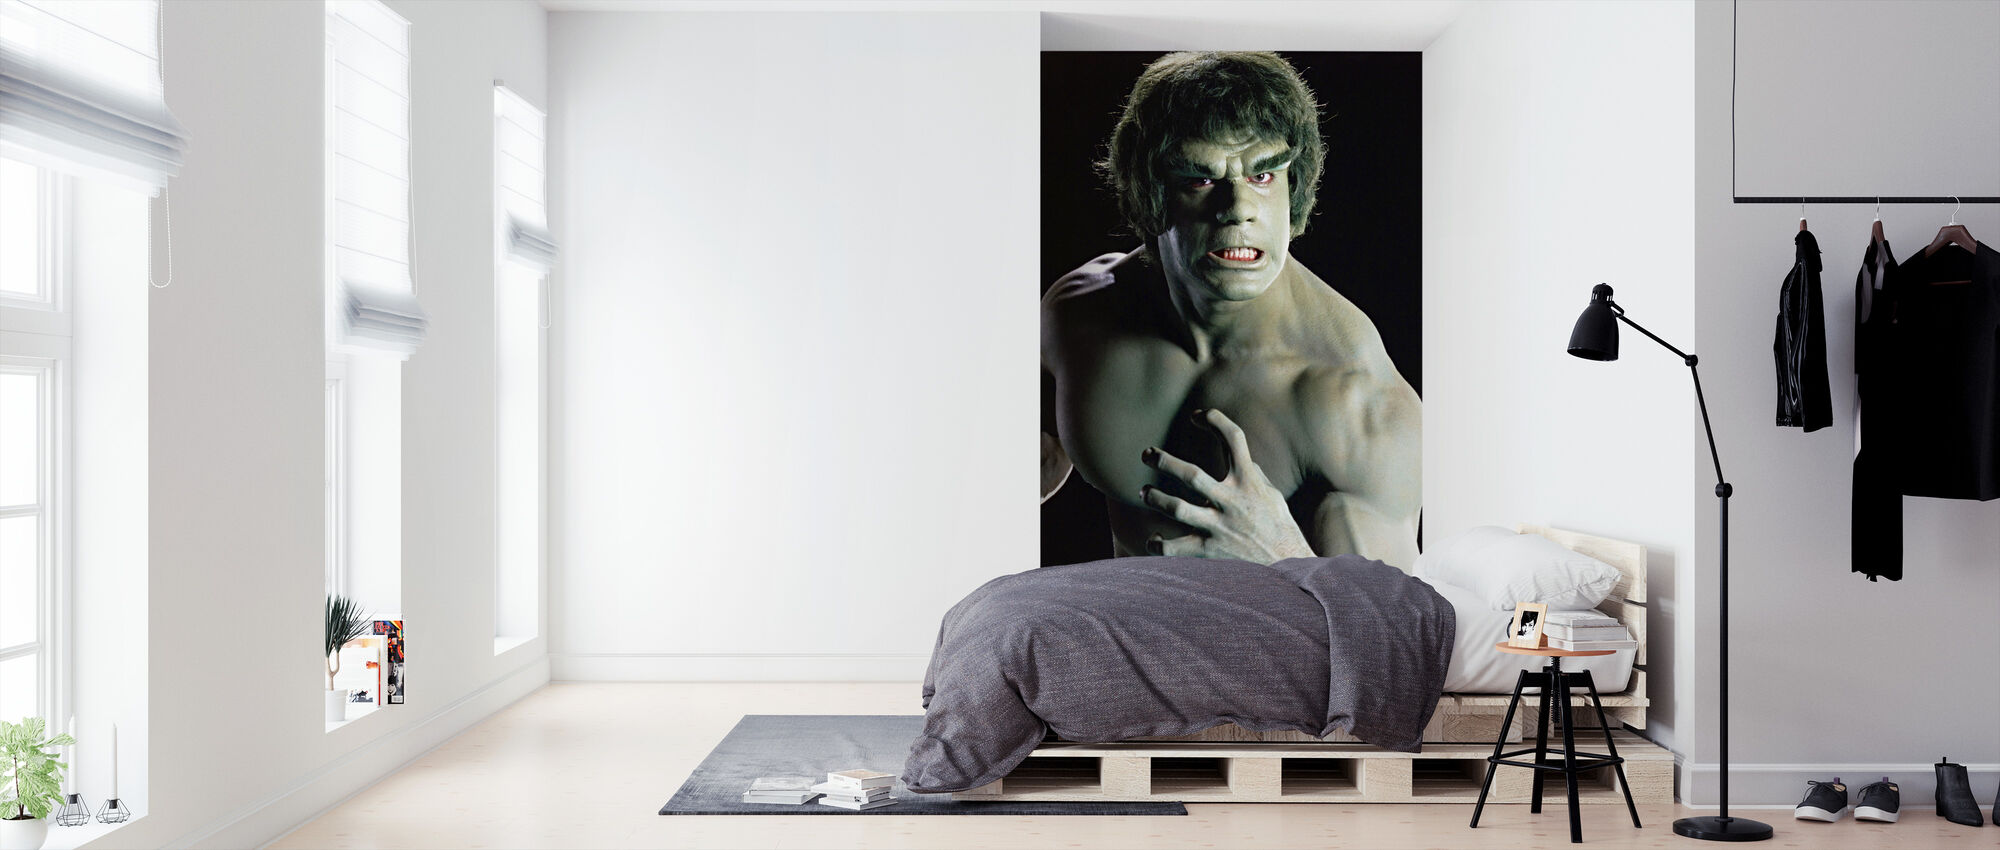 Incredible Hulk the TV - Wallpaper - Bedroom